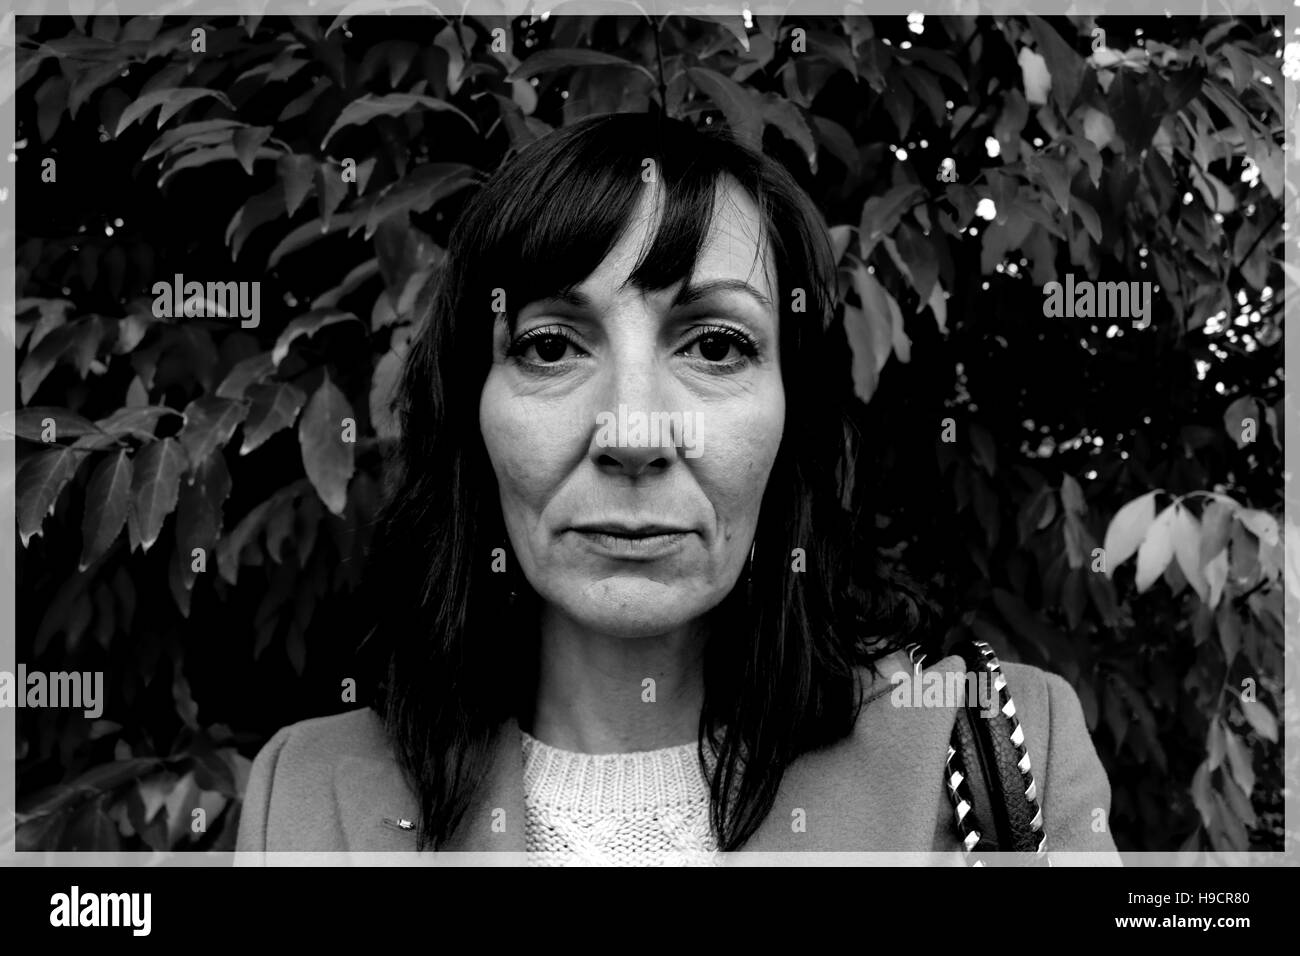 Close up Black and White Portrait of Woman with a sad and moody expression in front of leaves - Stock Image